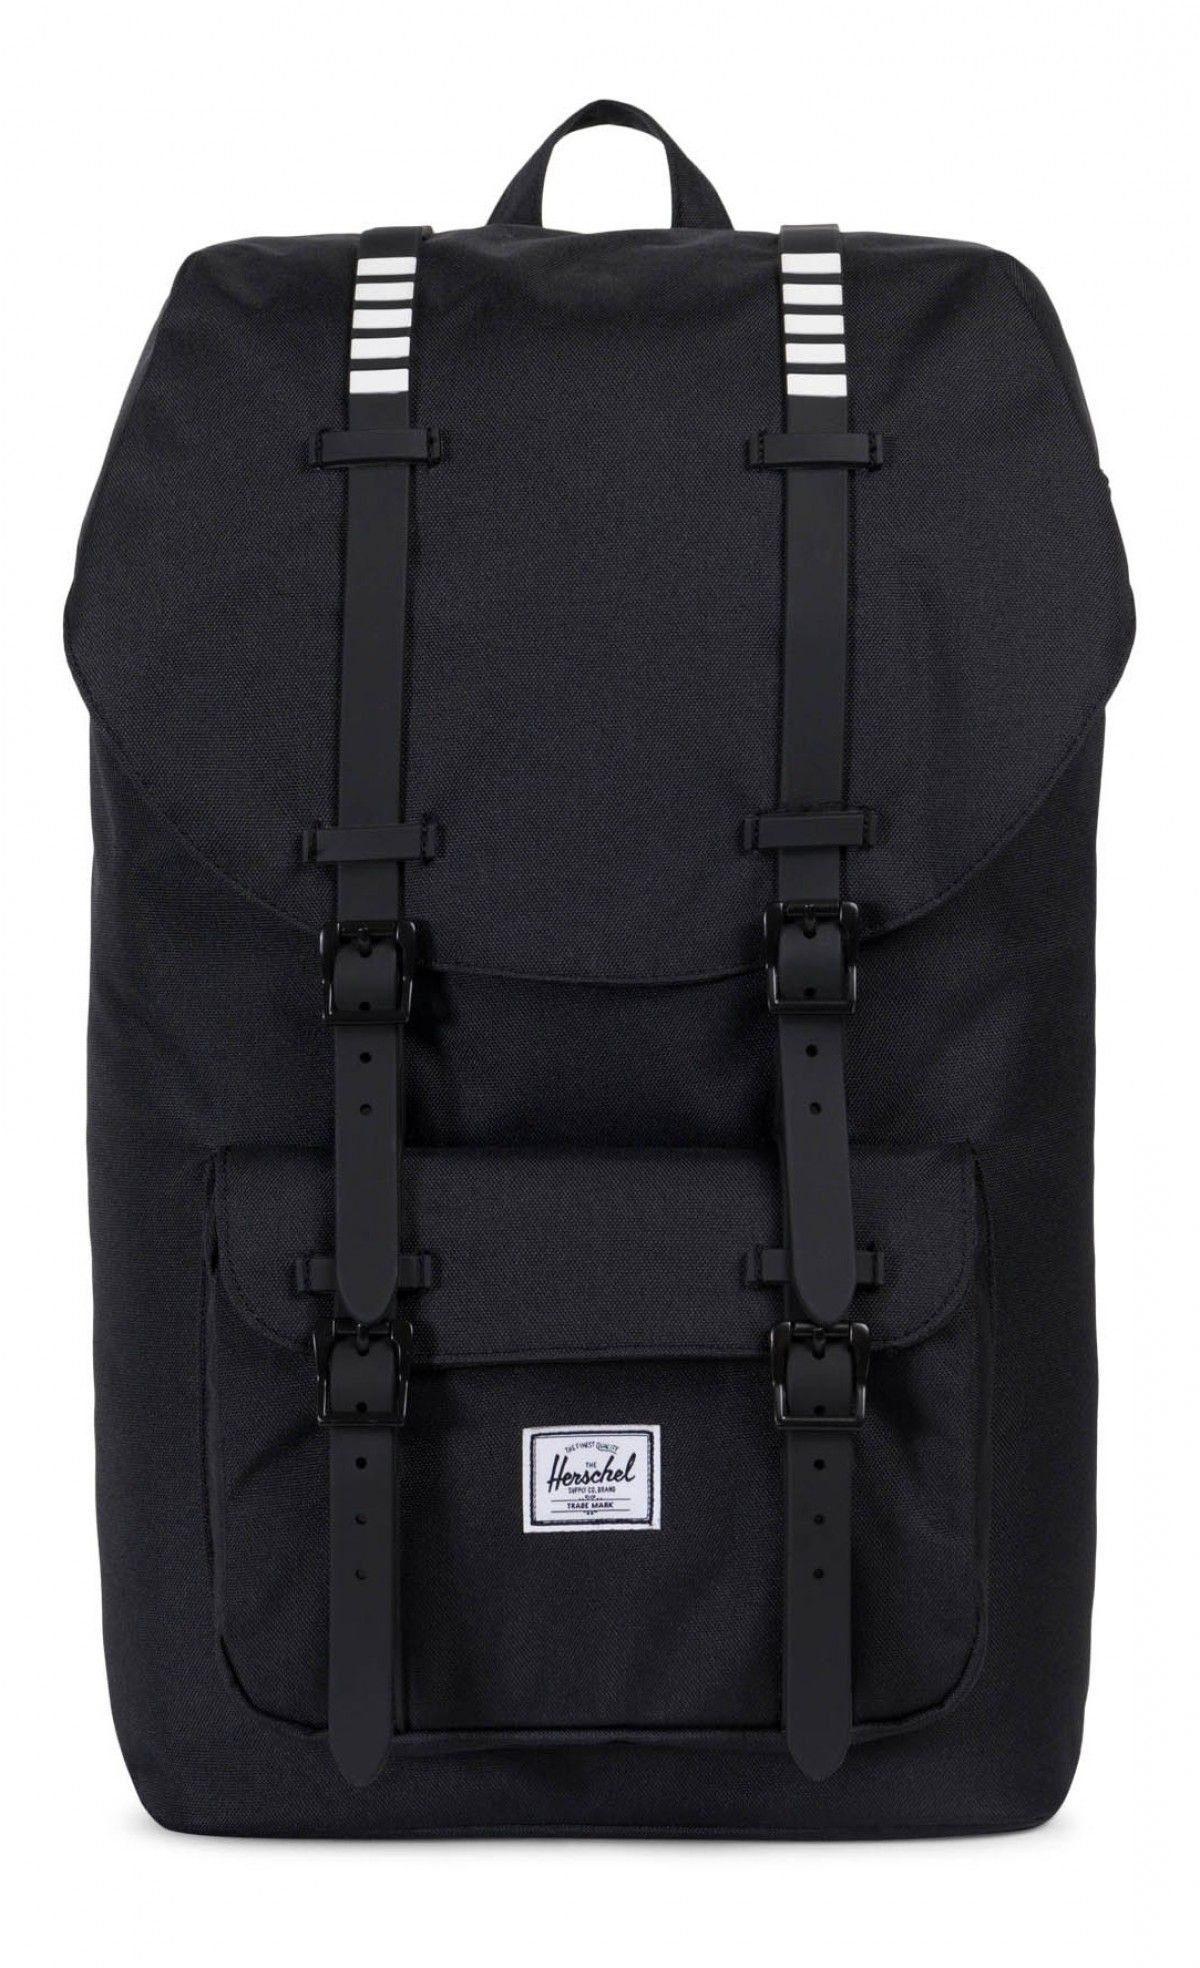 55ce9e079dbe Herschel Little America Backpack Poly Rubber Black Black White Inset ...